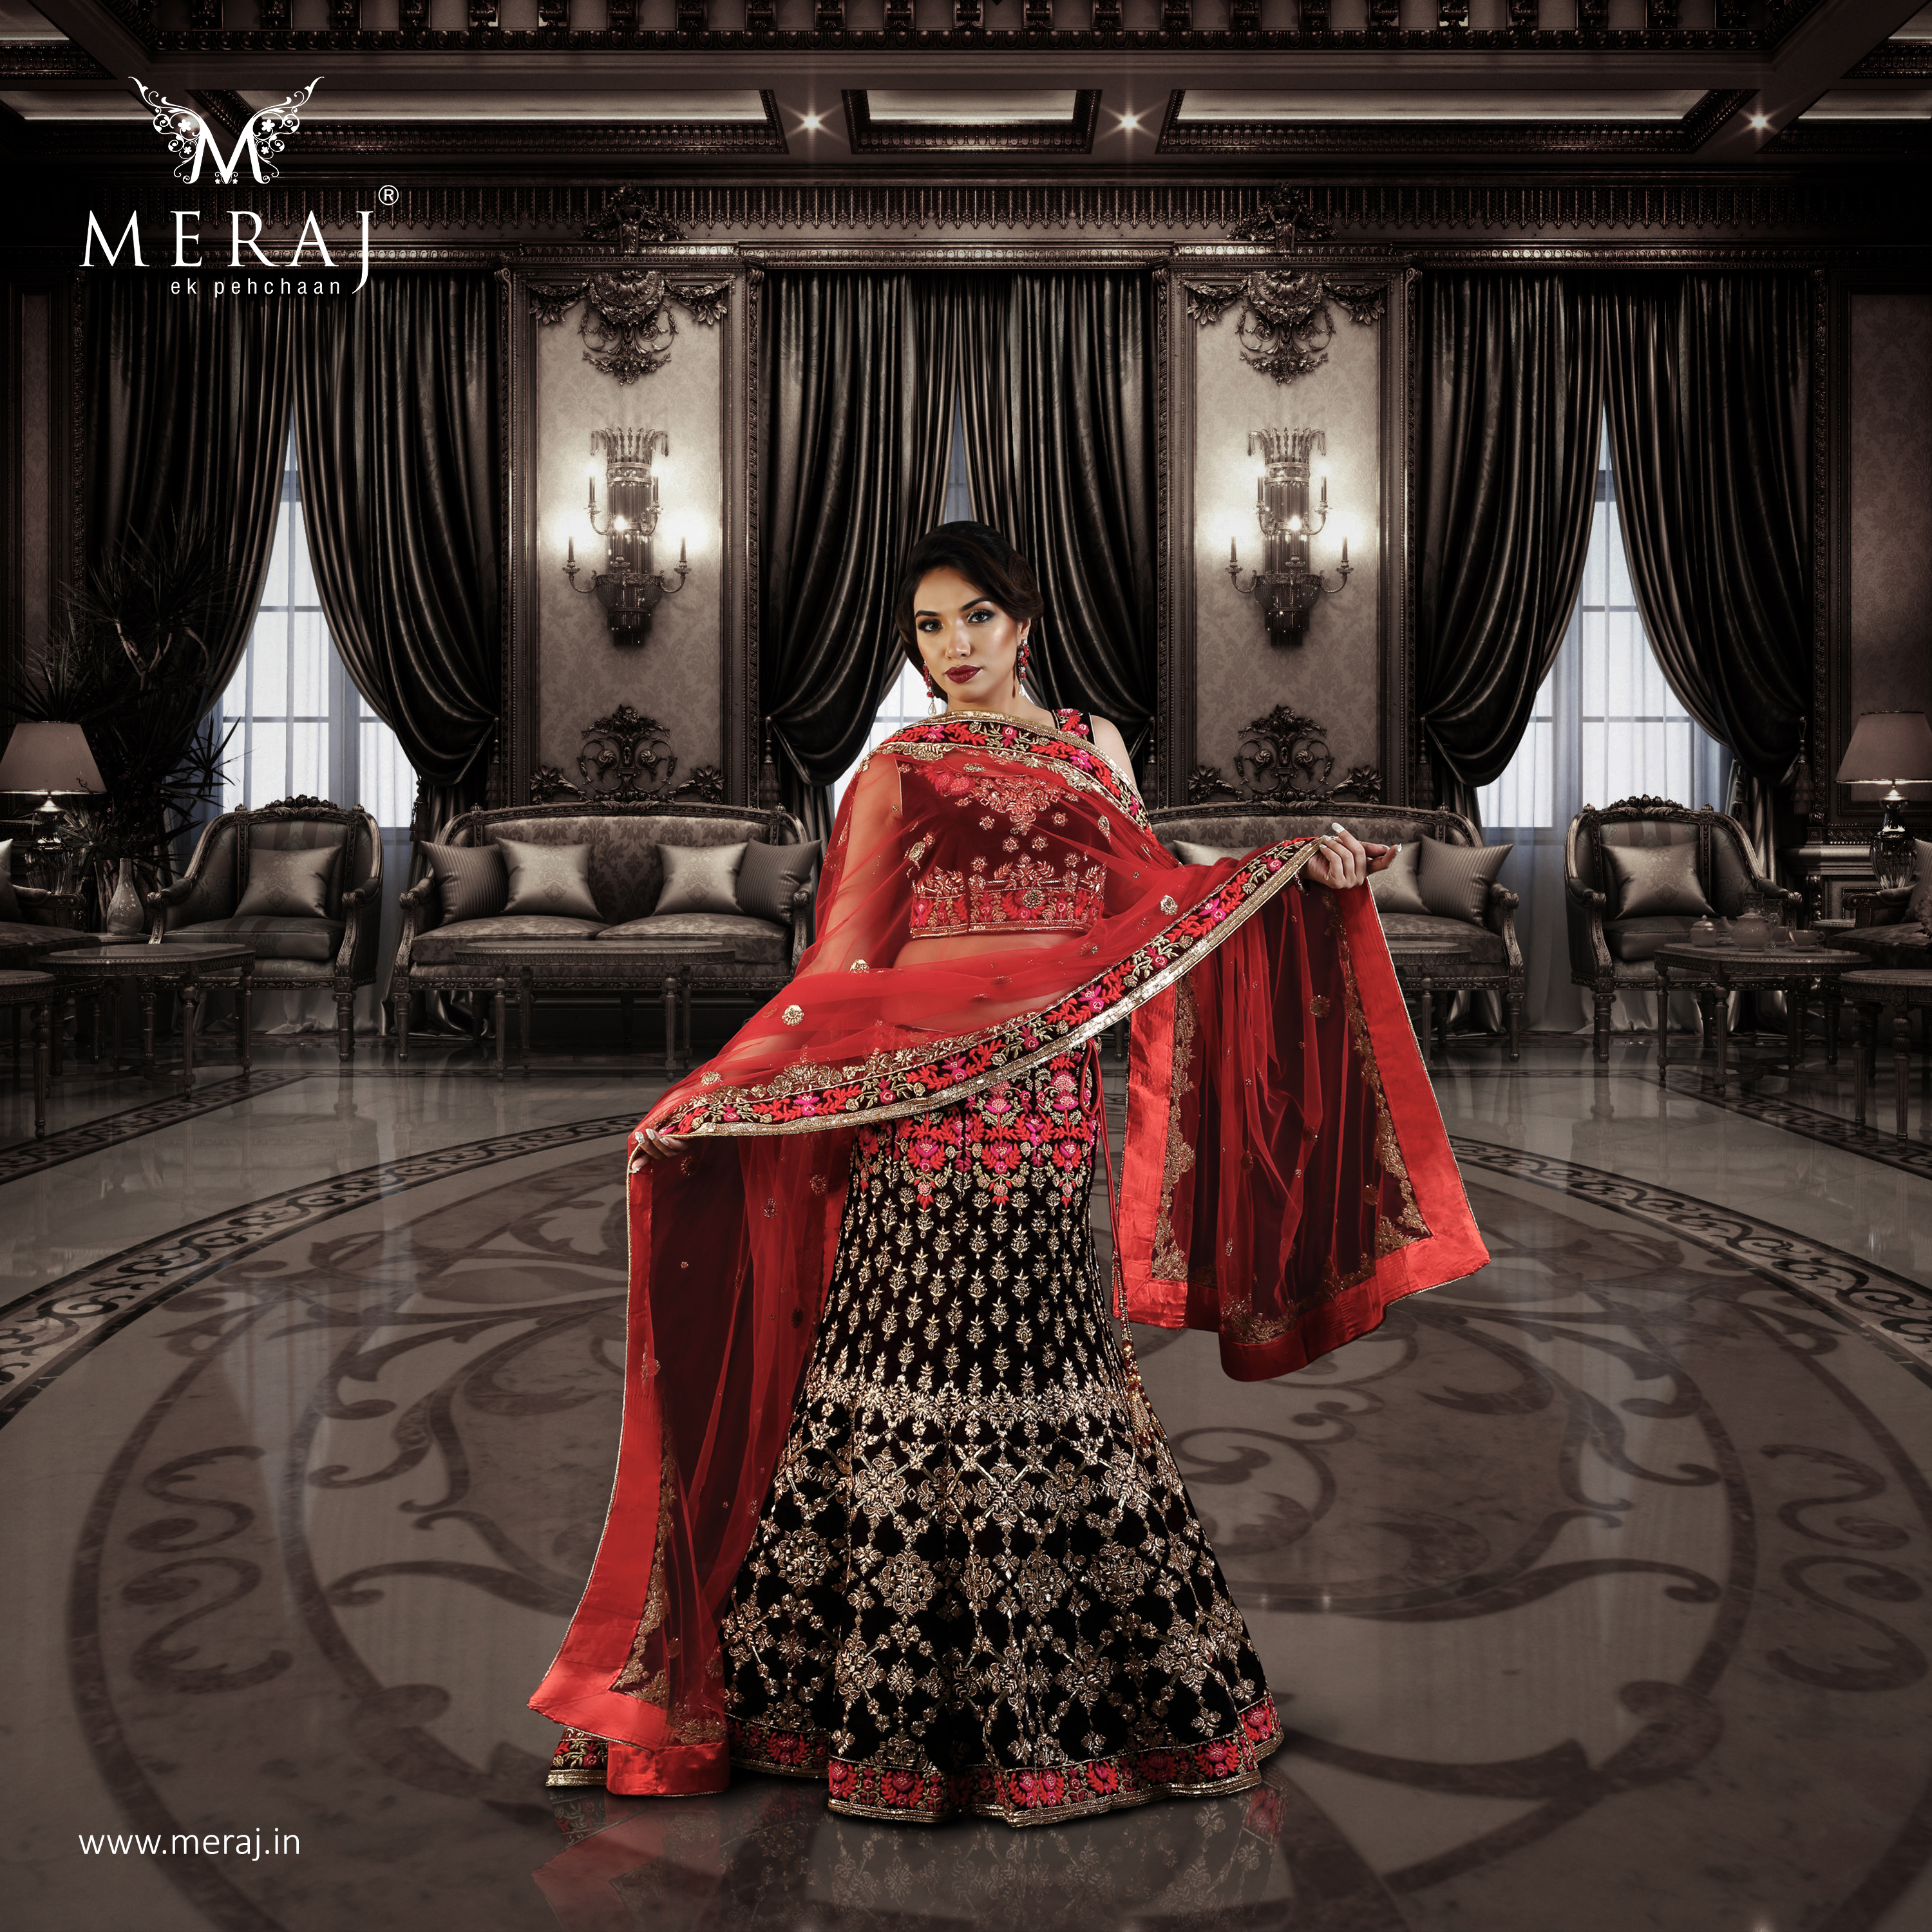 What You Need to Know Before Shopping for Your Bridal Lehengas